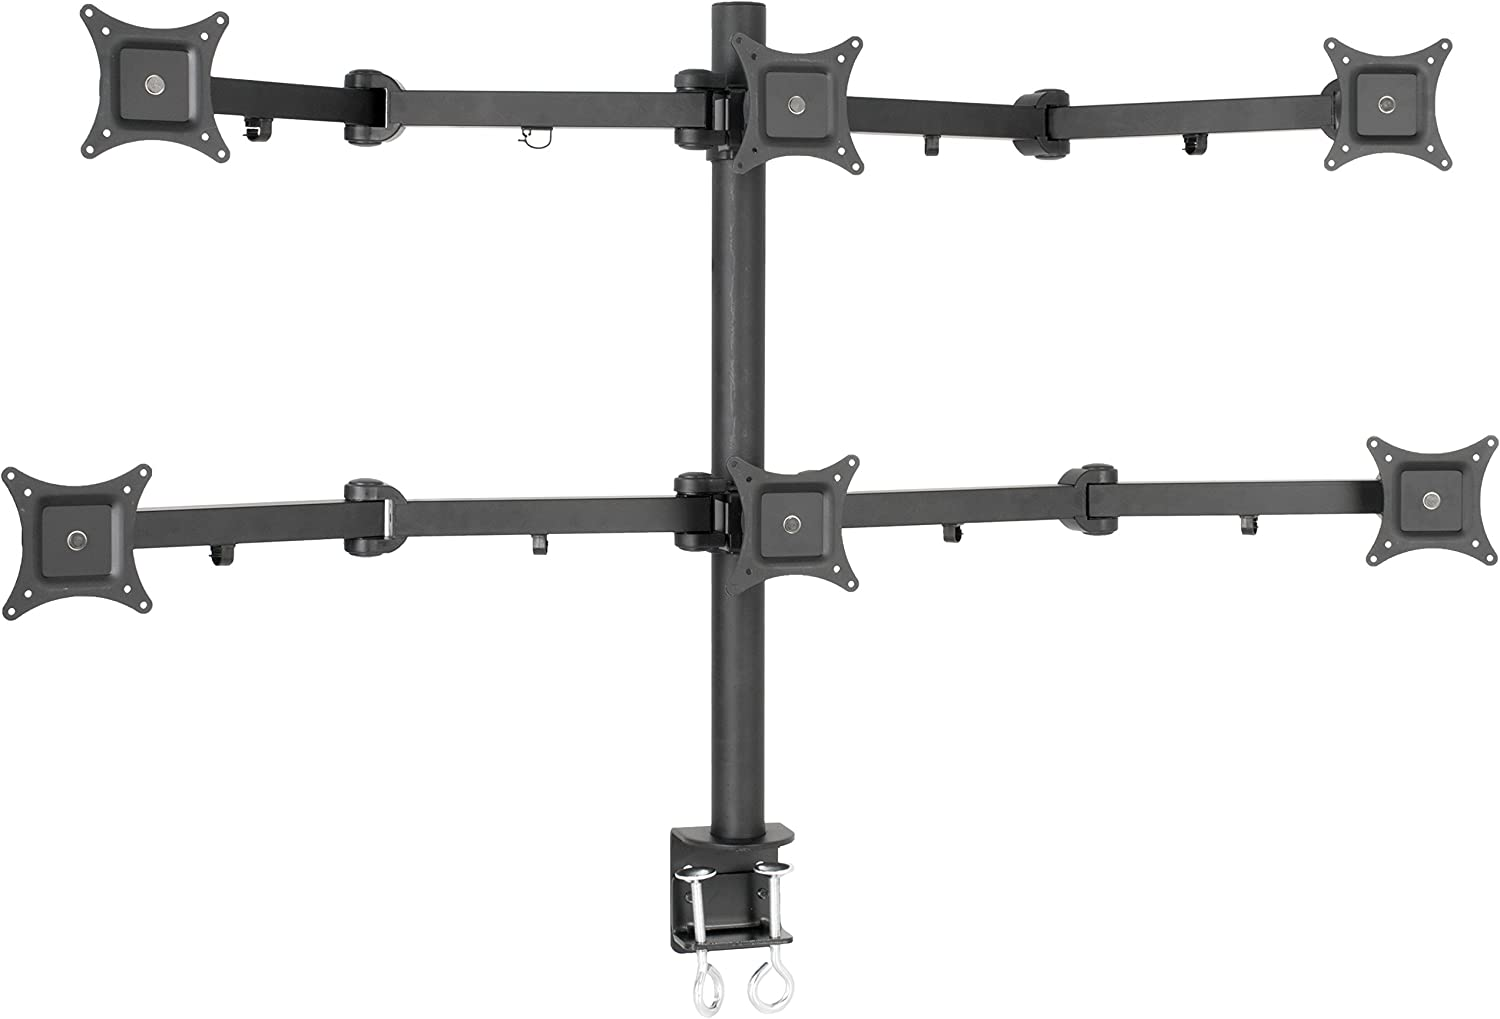 VIVO Hex LCD Monitor Desk Mount Stand Heavy Duty and Fully Adjustable, 6 Screens up to 24 inches, STAND-V006